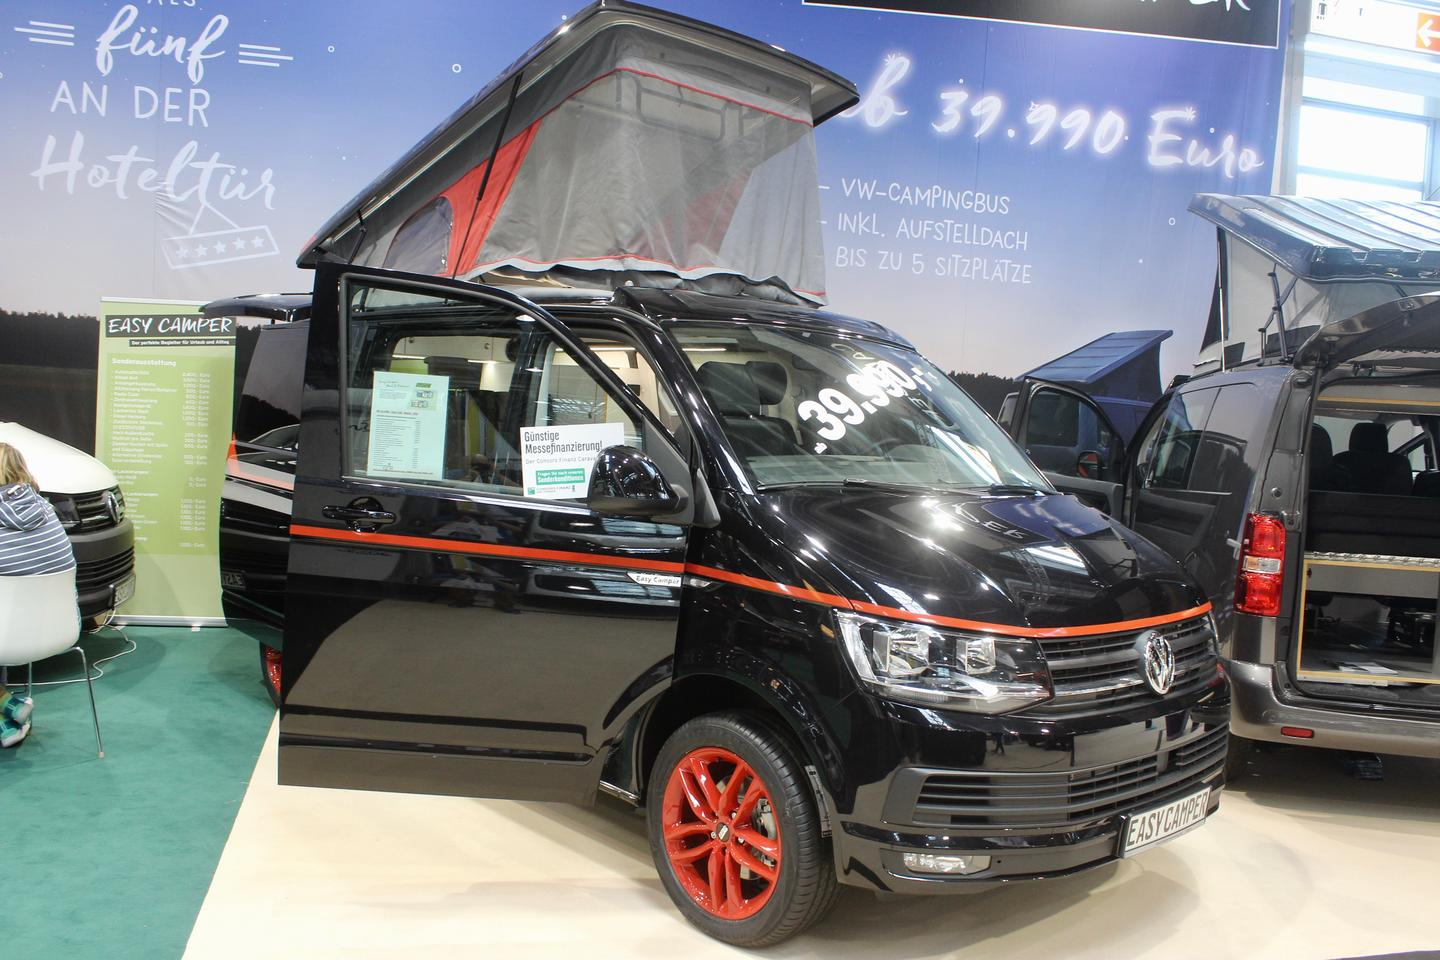 Easy Camper goes full-on A-Team with its latest camper van conversion